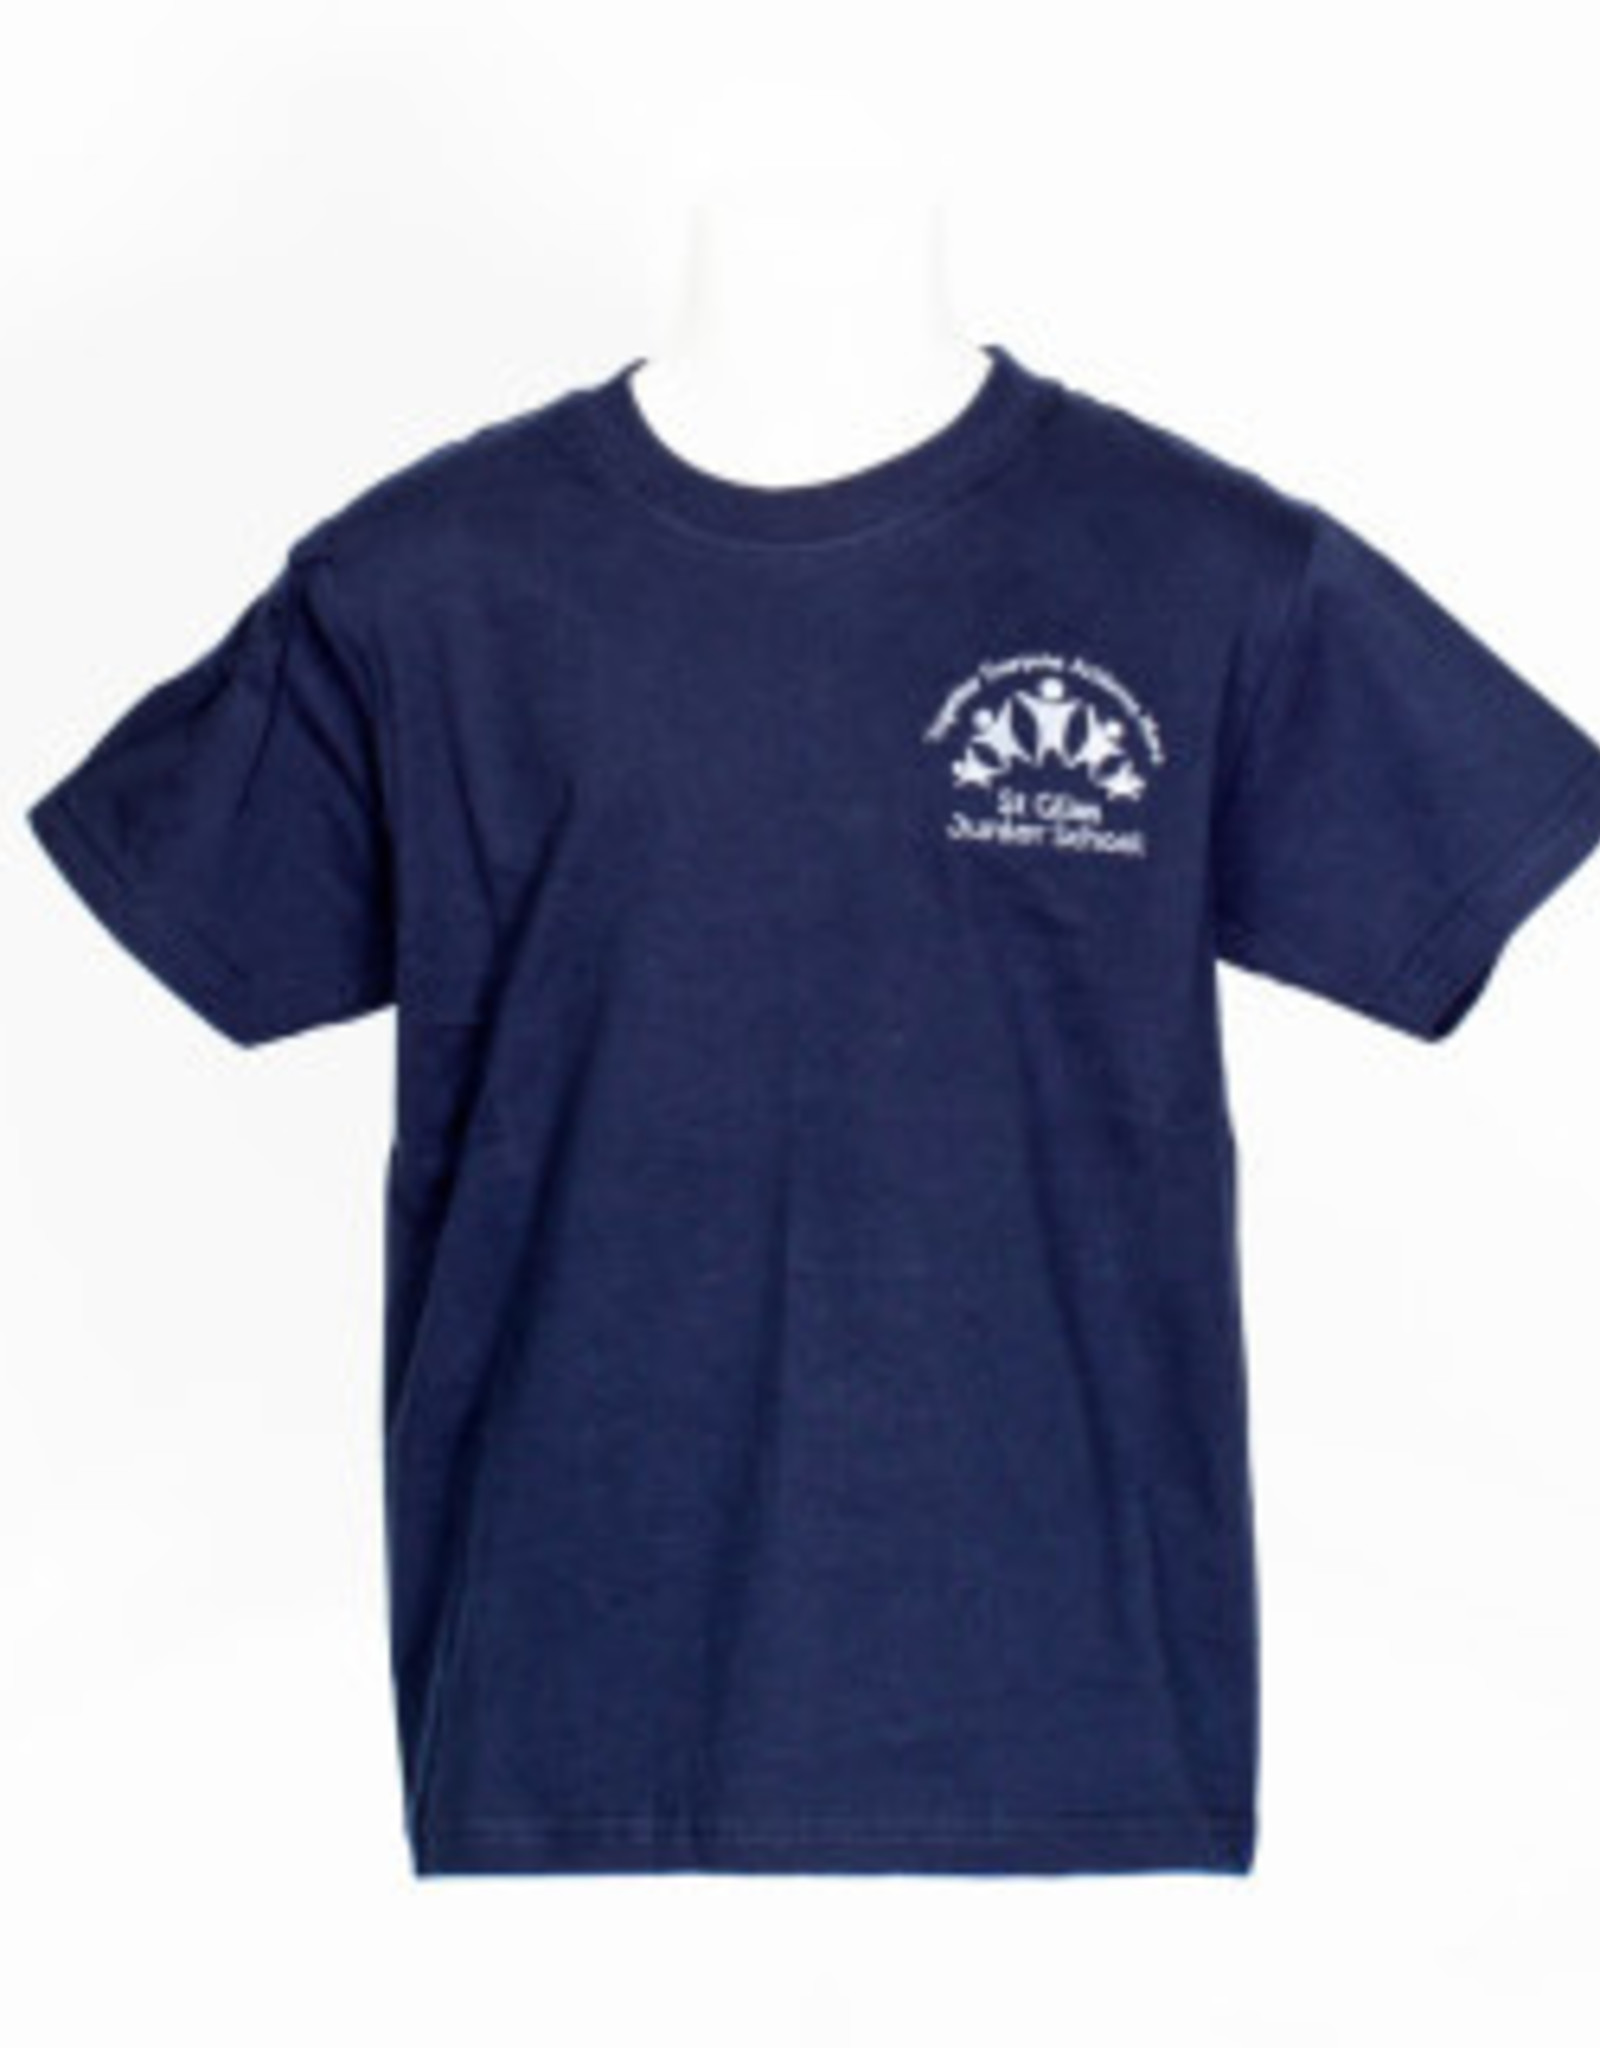 RUSSELL T-Shirt Adult Size - St Giles Junior School